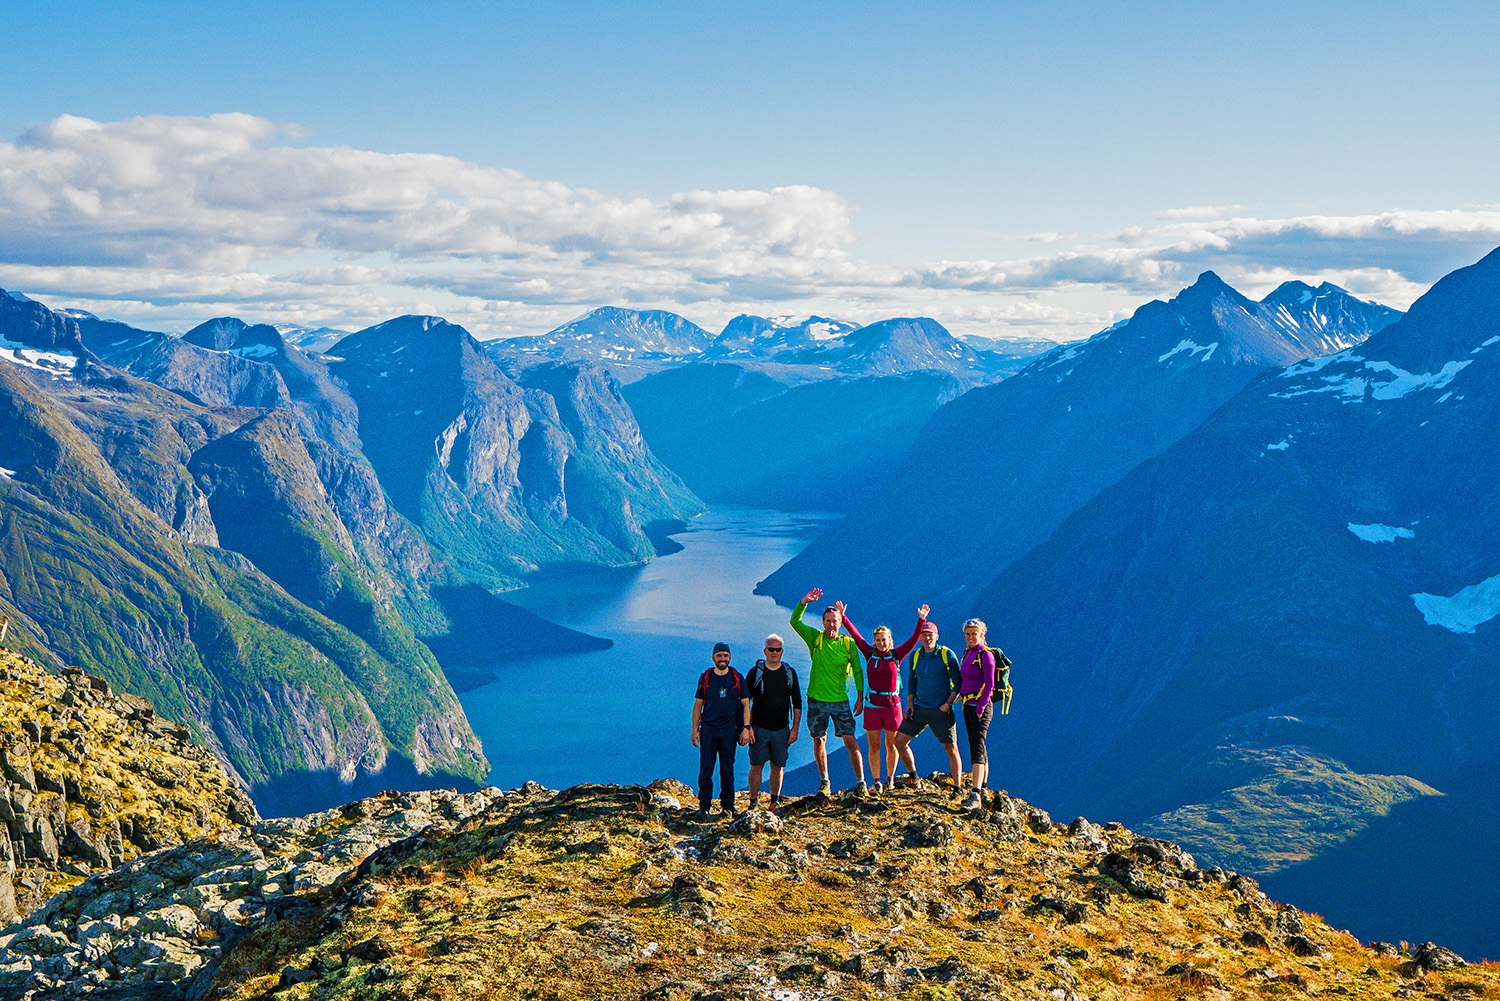 fjords-trekking-Adventure-Travel-Norway-kopi.jpg